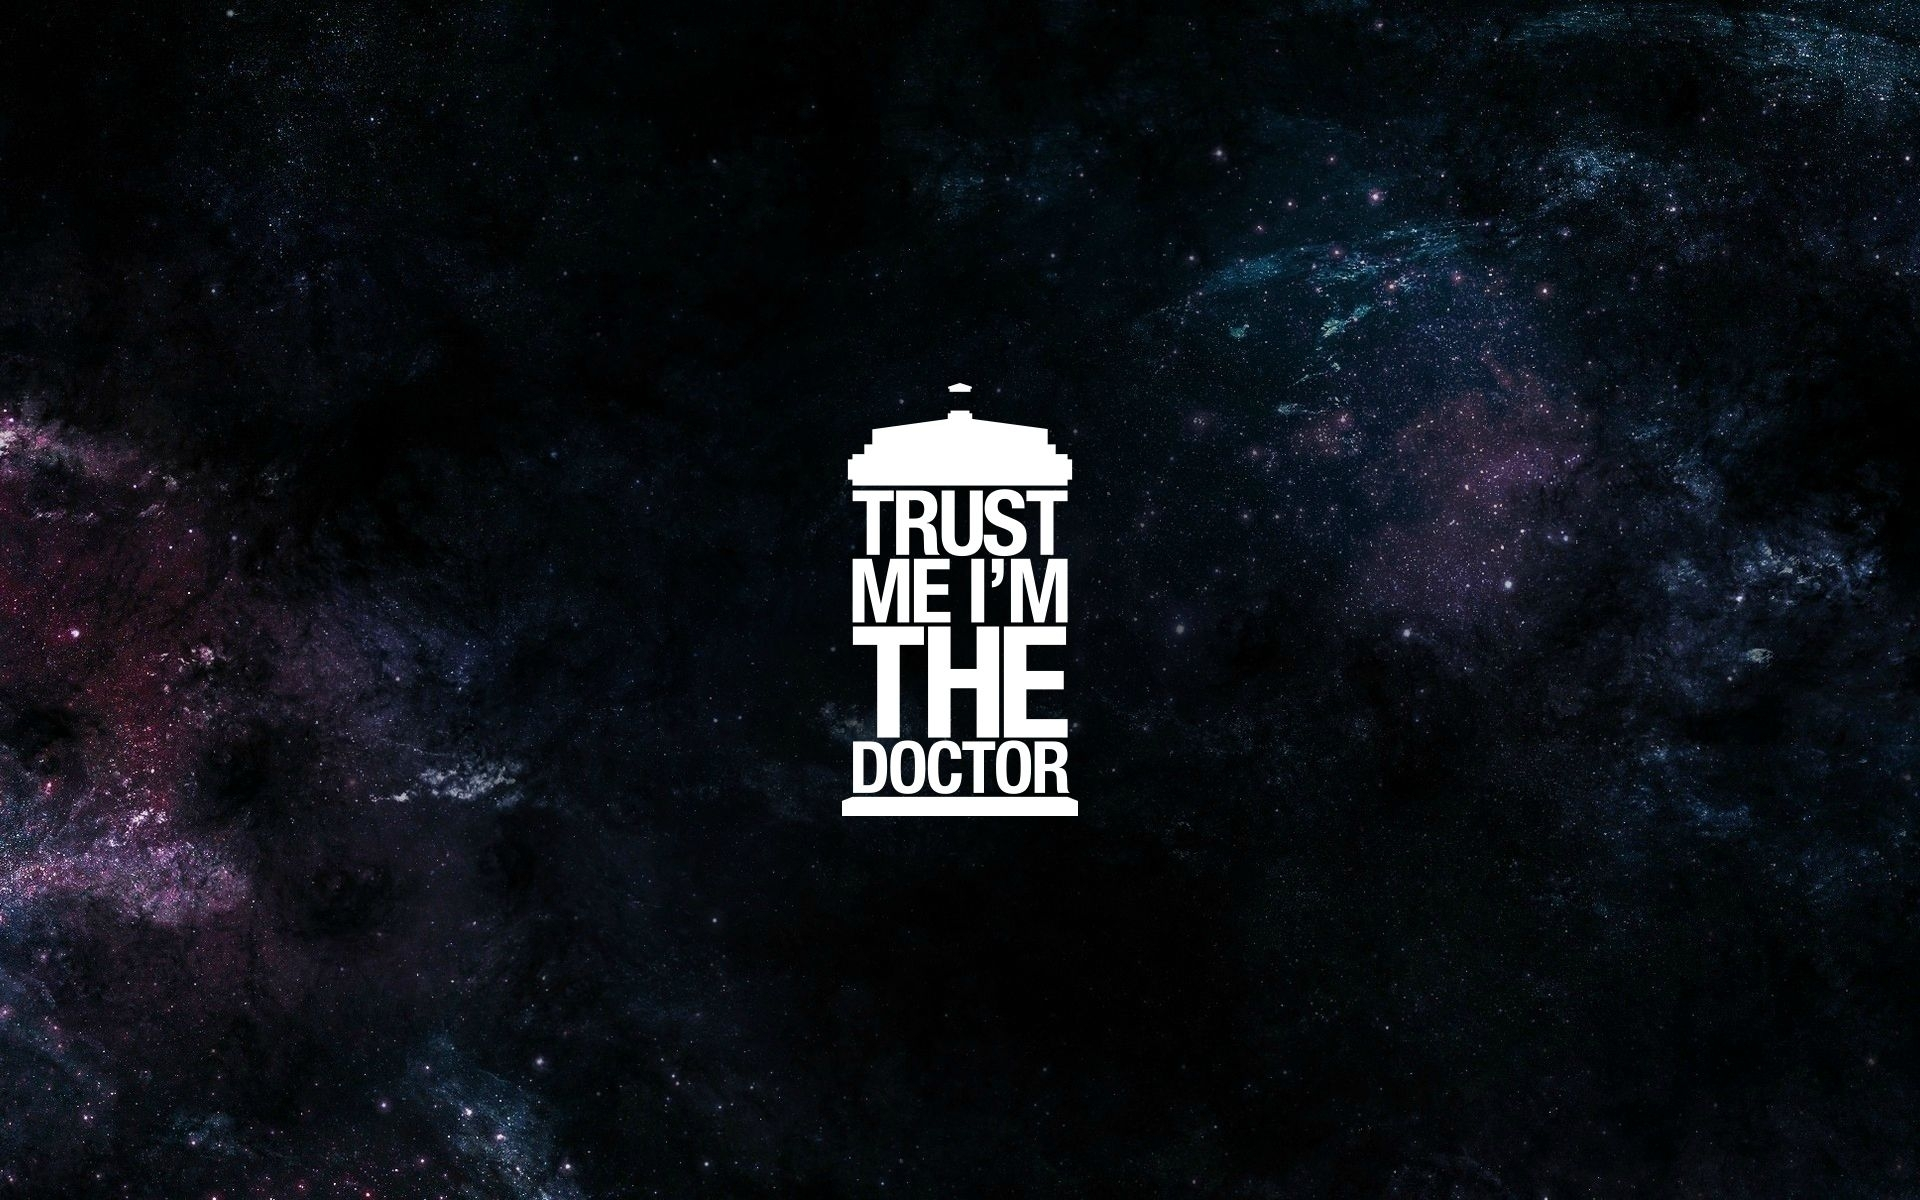 doctor who full hd wallpaper and background image | 1920x1200 | id